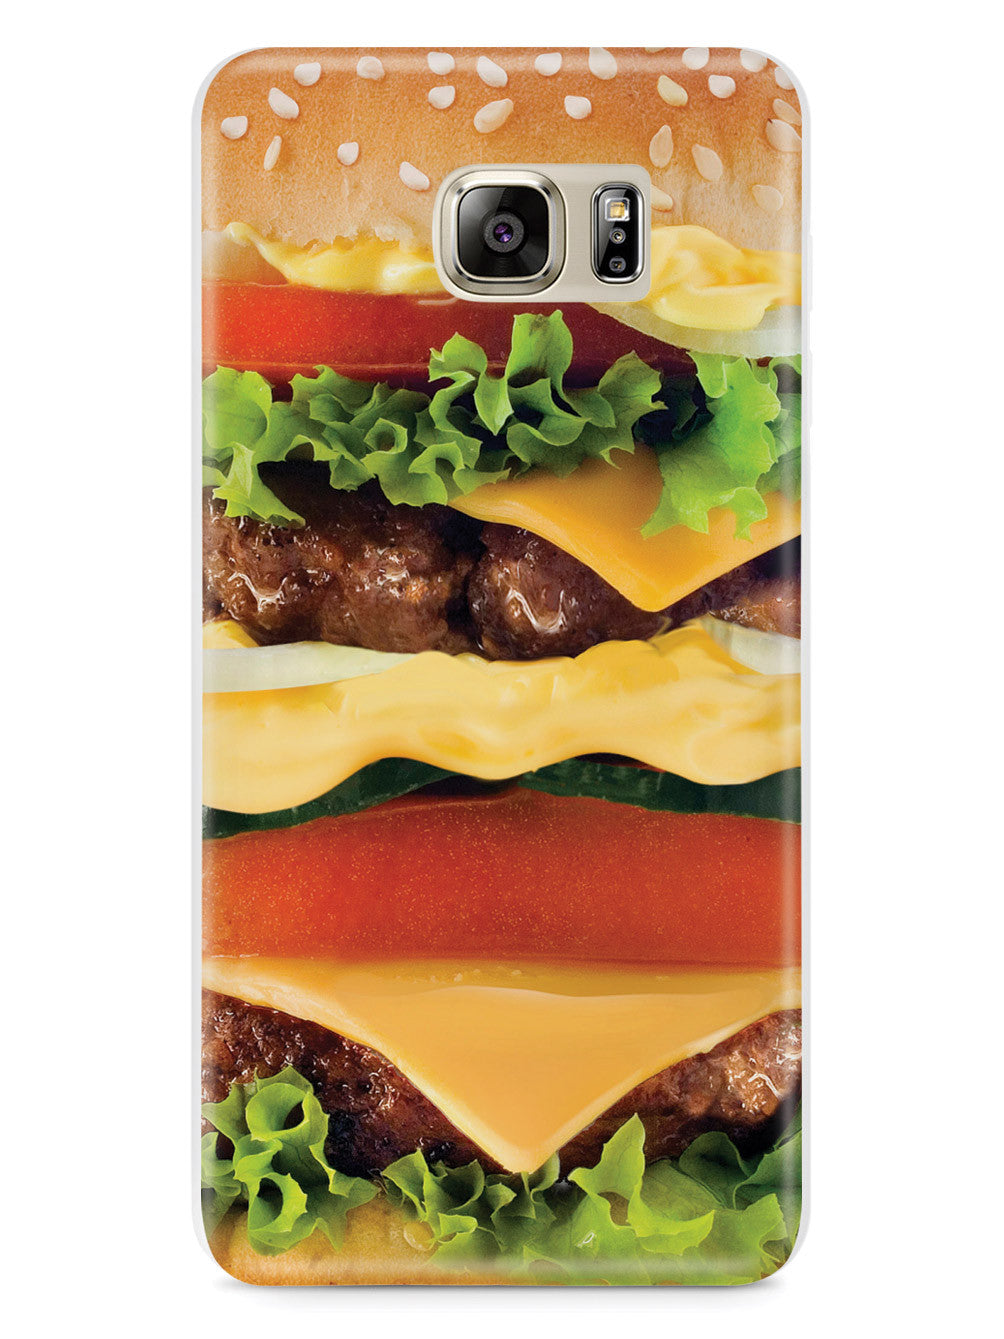 Cheeseburger Case